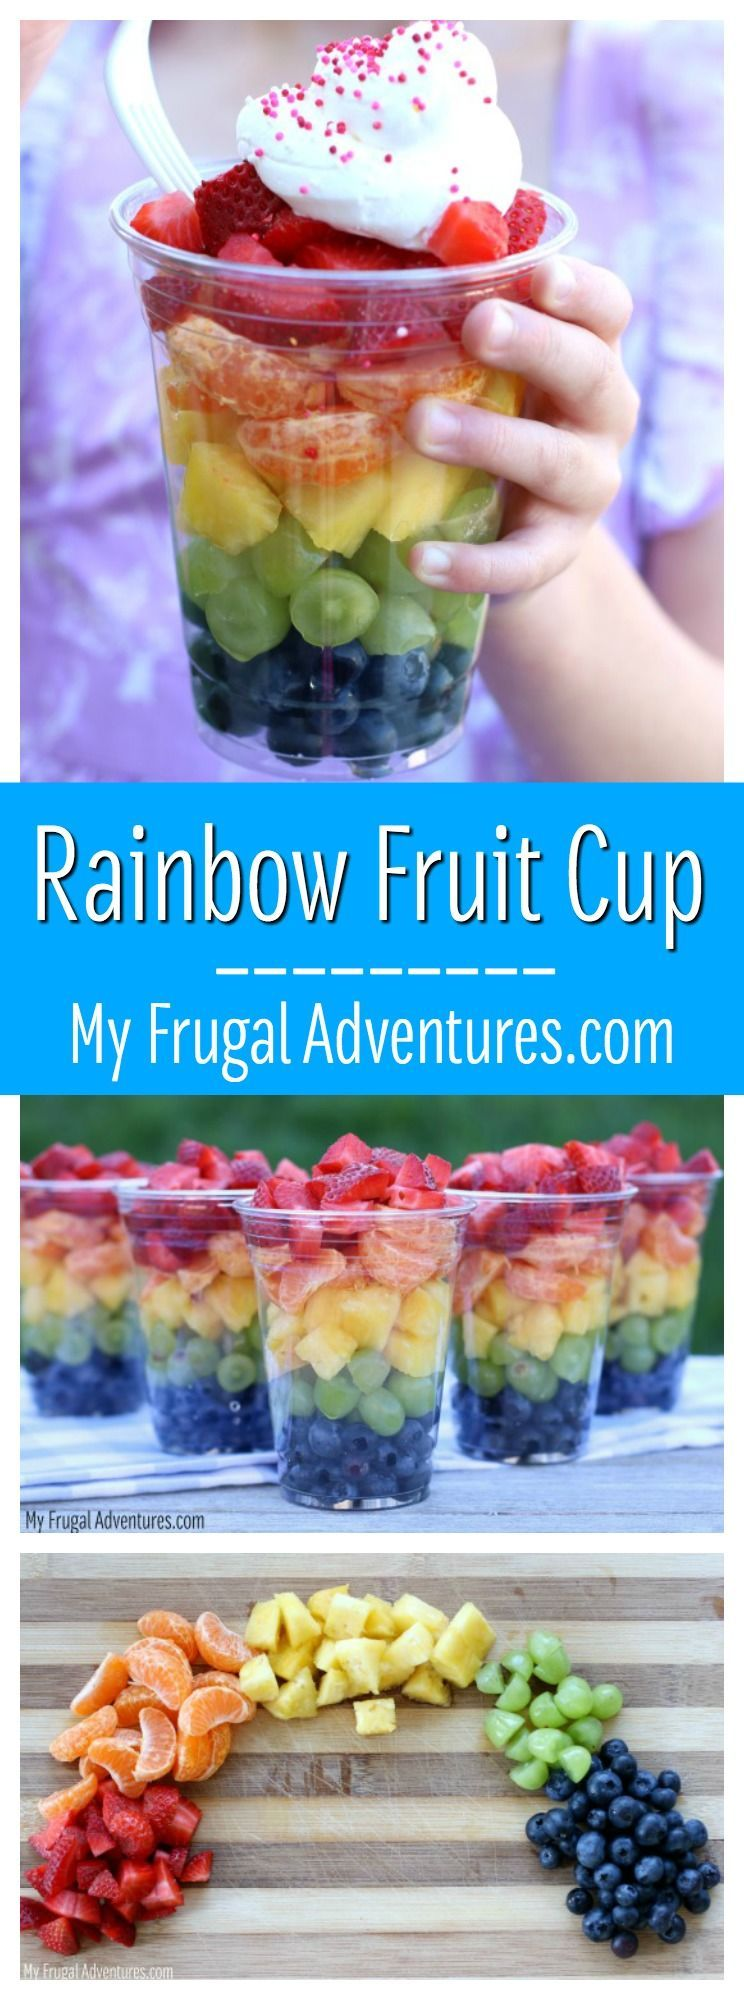 Rainbow Fruit Cups {Healthy Snack for Children} - My Frugal Adventures